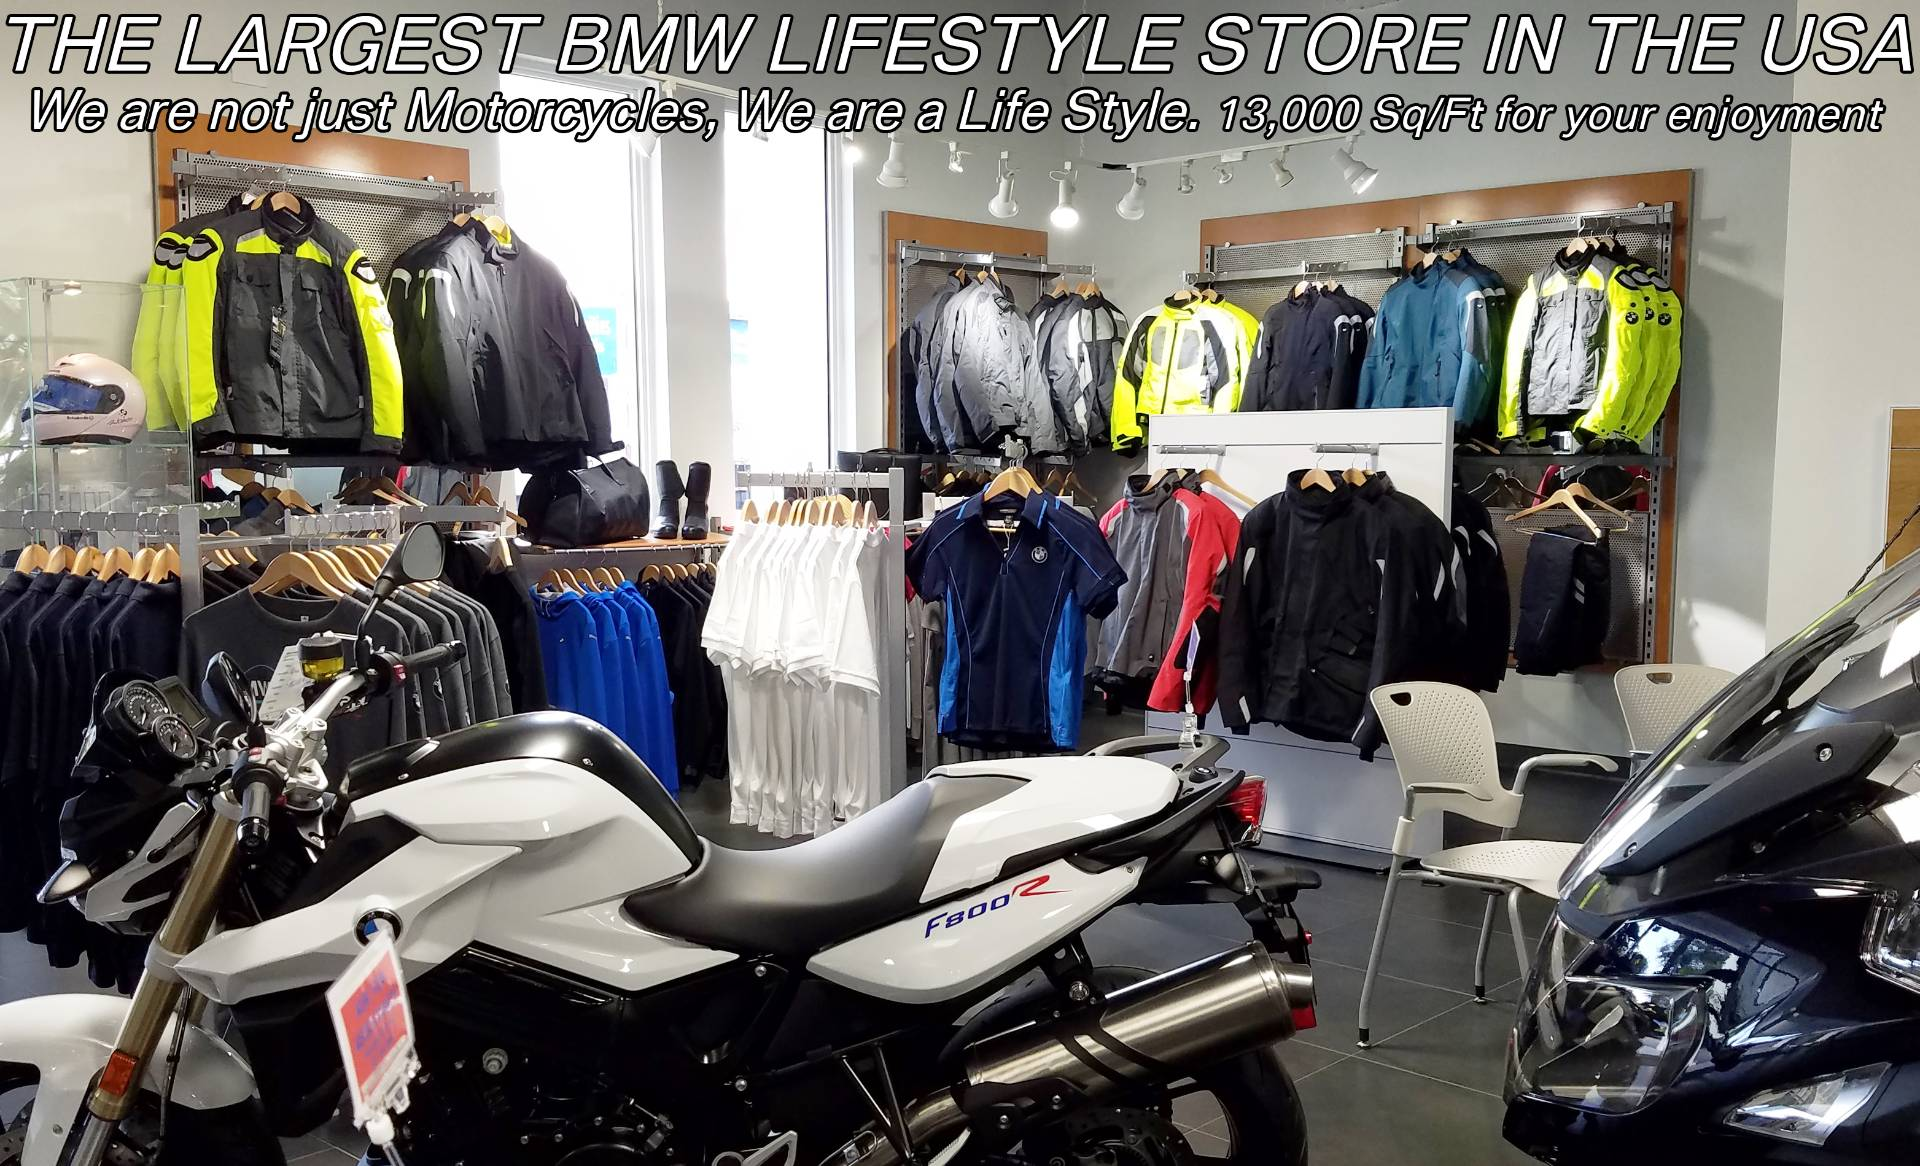 Used 2015 BMW R 1200 GSA for sale, BMW R 1200GSA for sale, BMW Motorcycle R1200GSA, used BMW Adventure, Dual, GS, BMW. BMW Motorcycles of Miami, Motorcycles of Miami, Motorcycles Miami, New Motorcycles, Used Motorcycles, pre-owned. #BMWMotorcyclesOfMiami #MotorcyclesOfMiami. - Photo 33